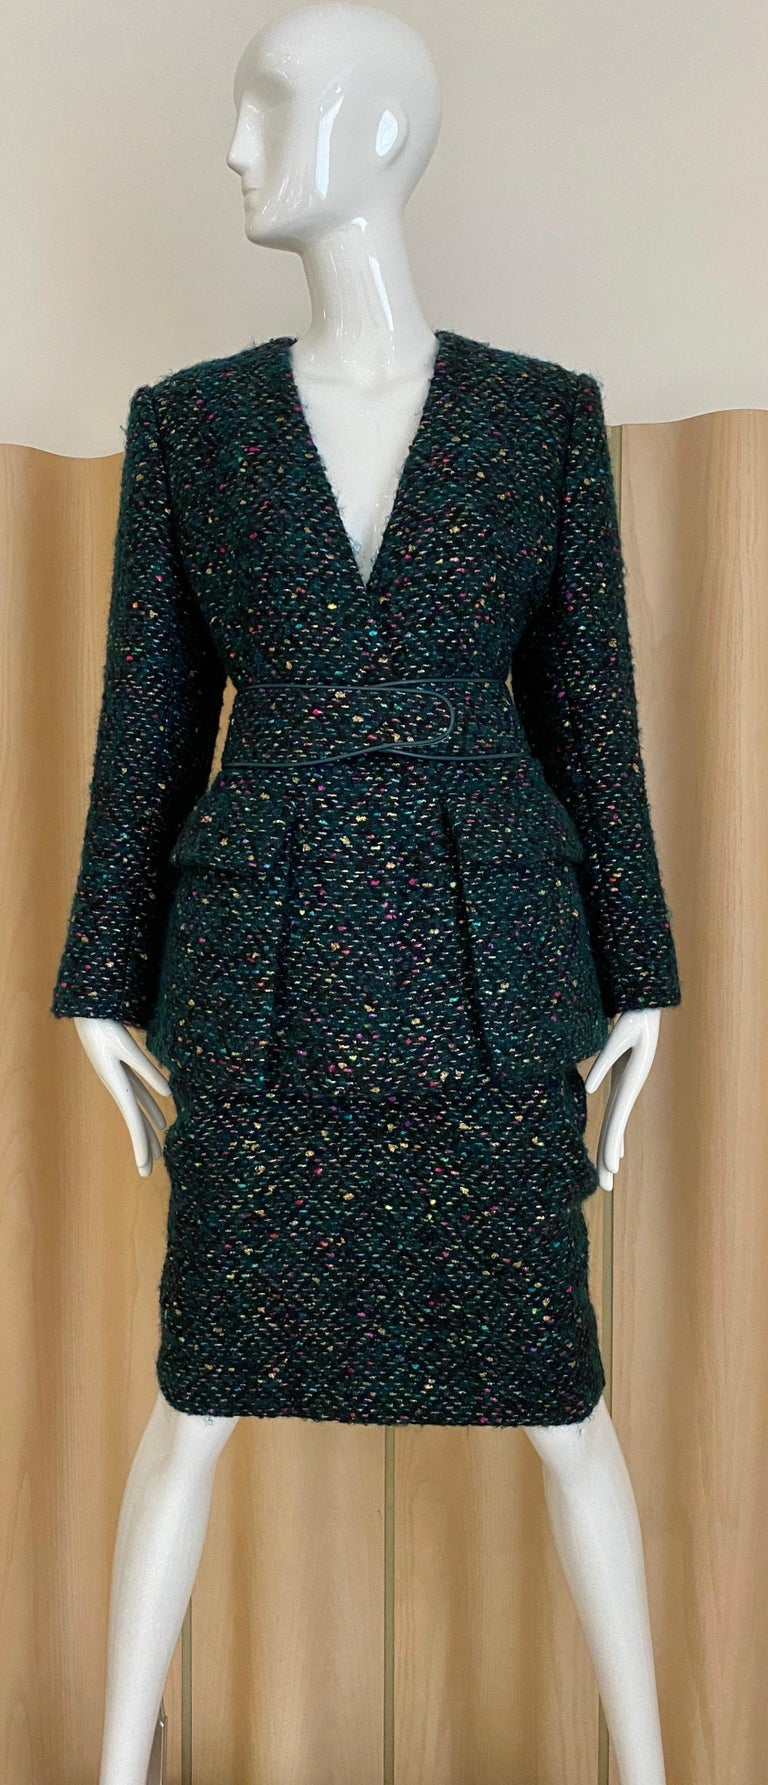 Vintage Galanos Skirt Suit from the 1960's in a cashmere and wool boucle with metallic threads woven into it. Jacket has a v neck no collar, one center button, two flap patch pockets and a contoured belt trimmed in leather and metal fasteners. Knee